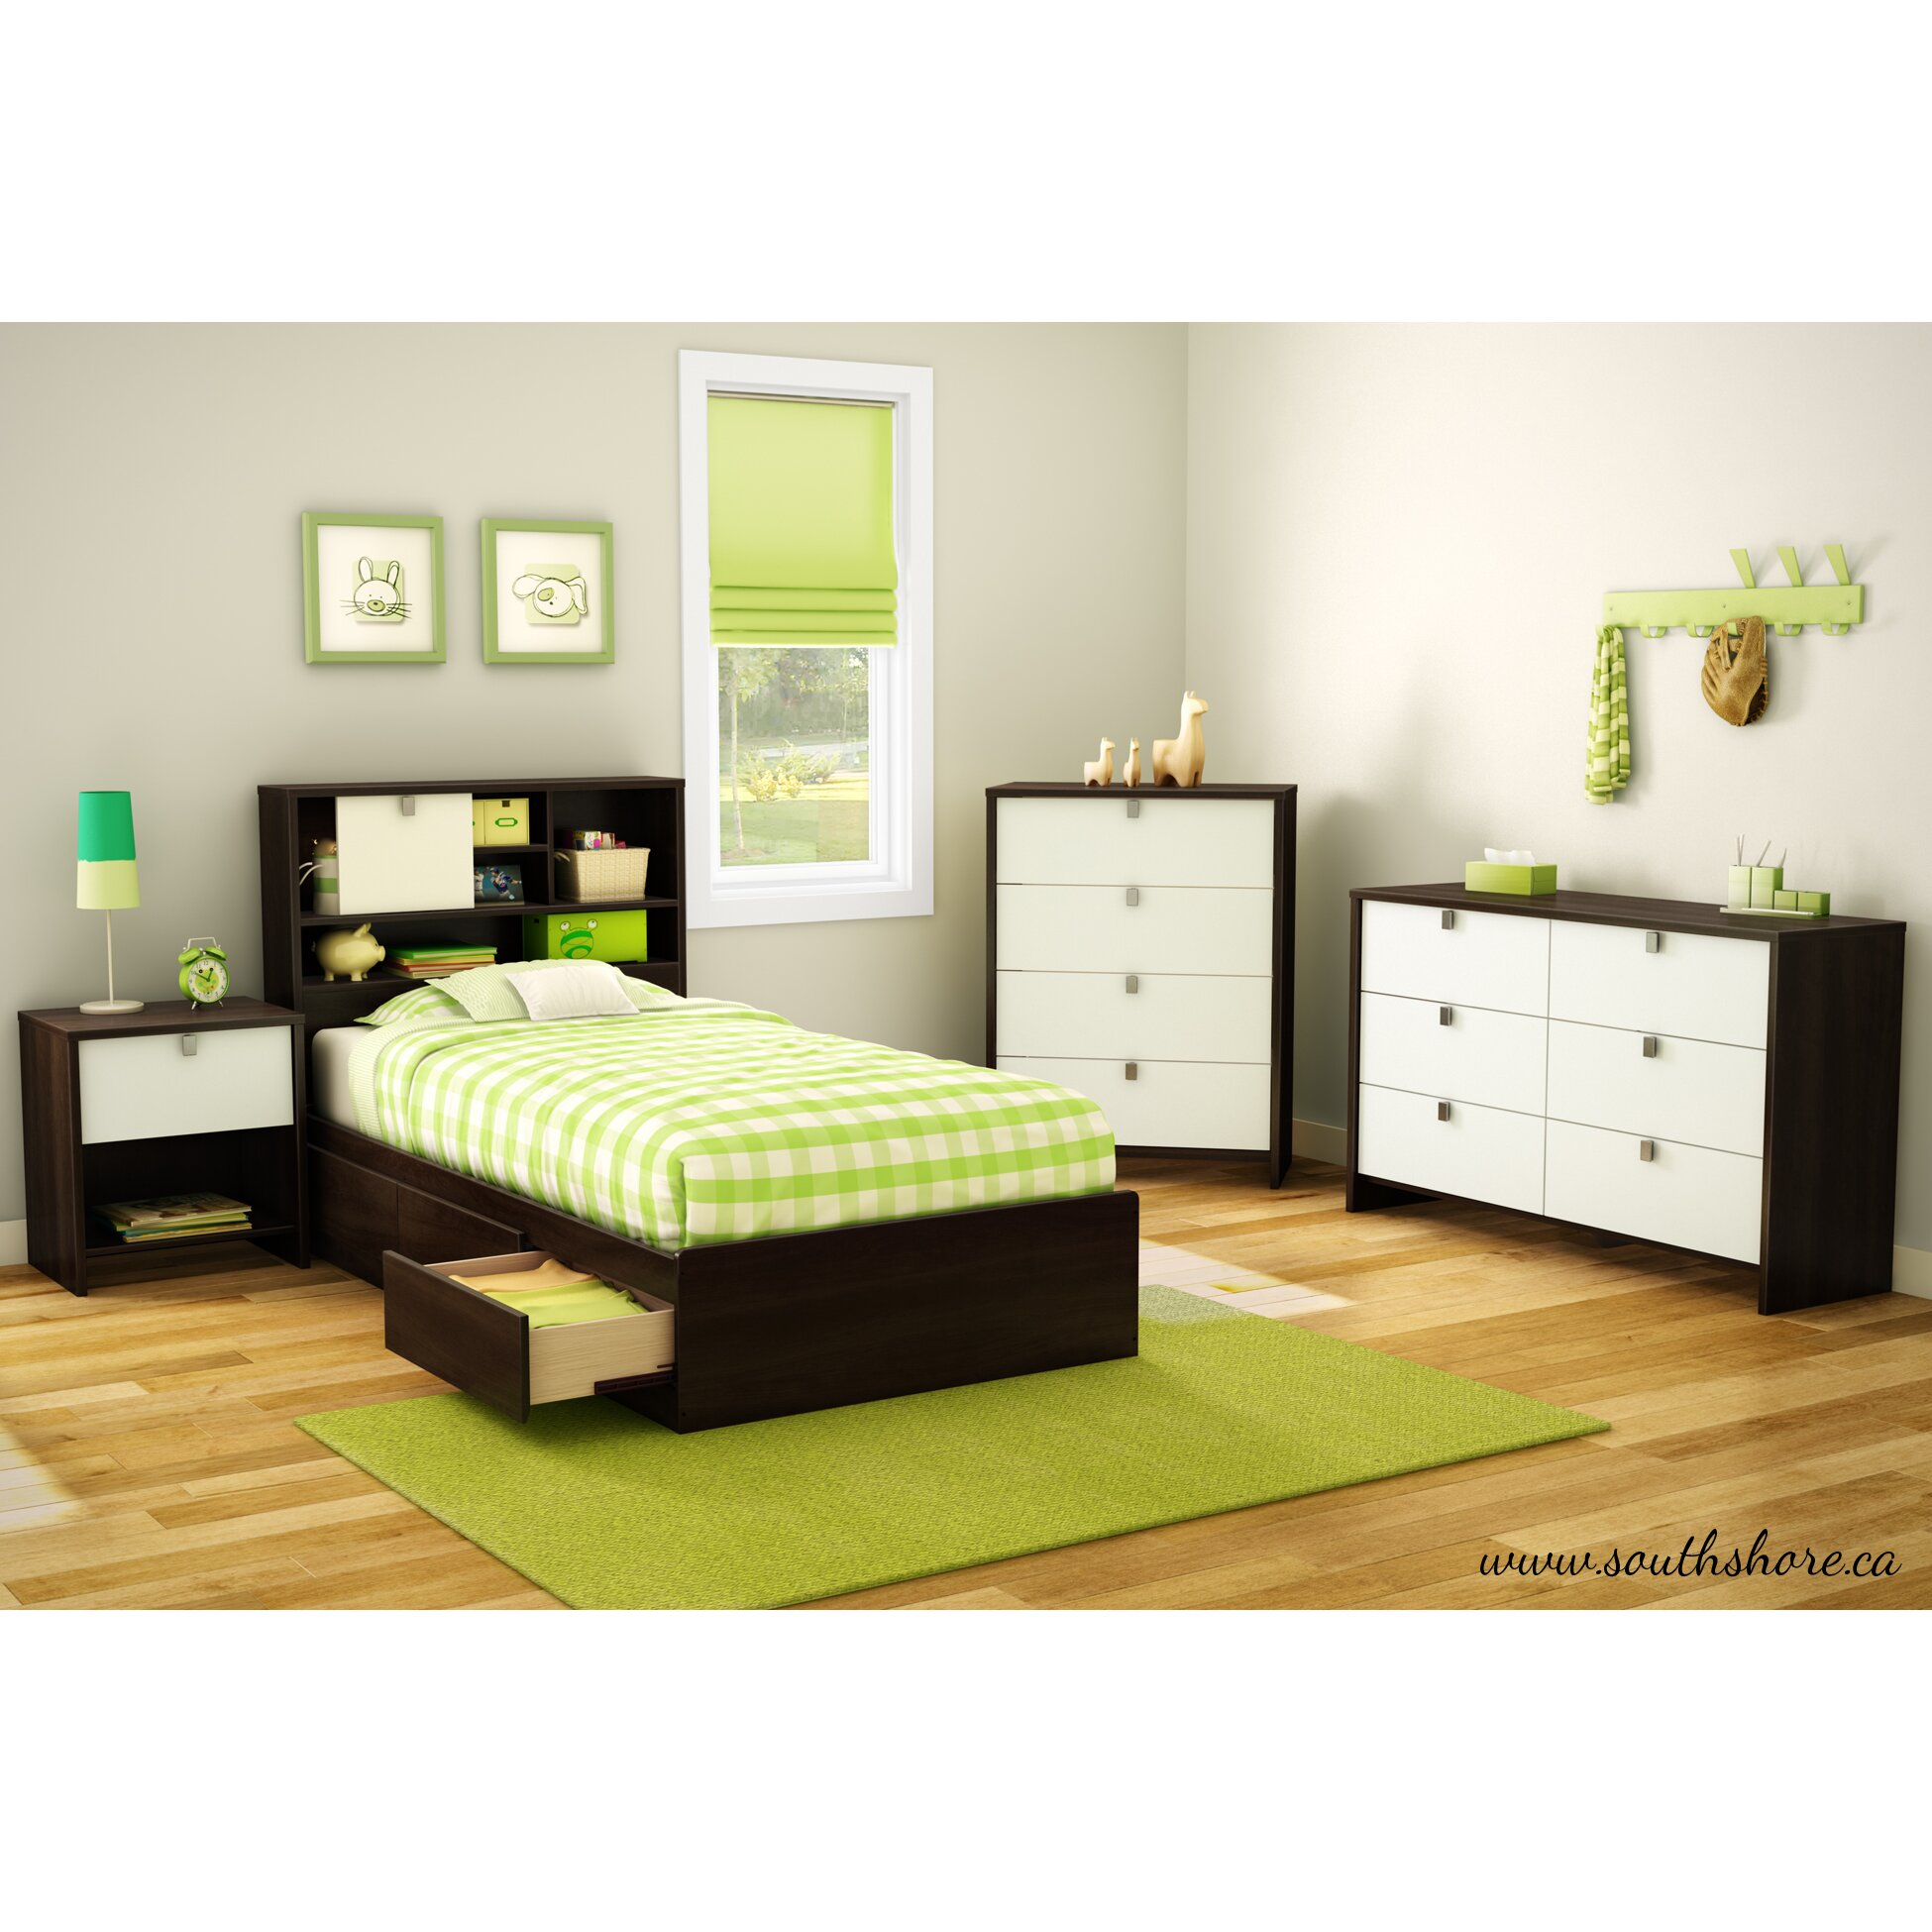 south shore cookie twin platform customizable bedroom set 17386 |